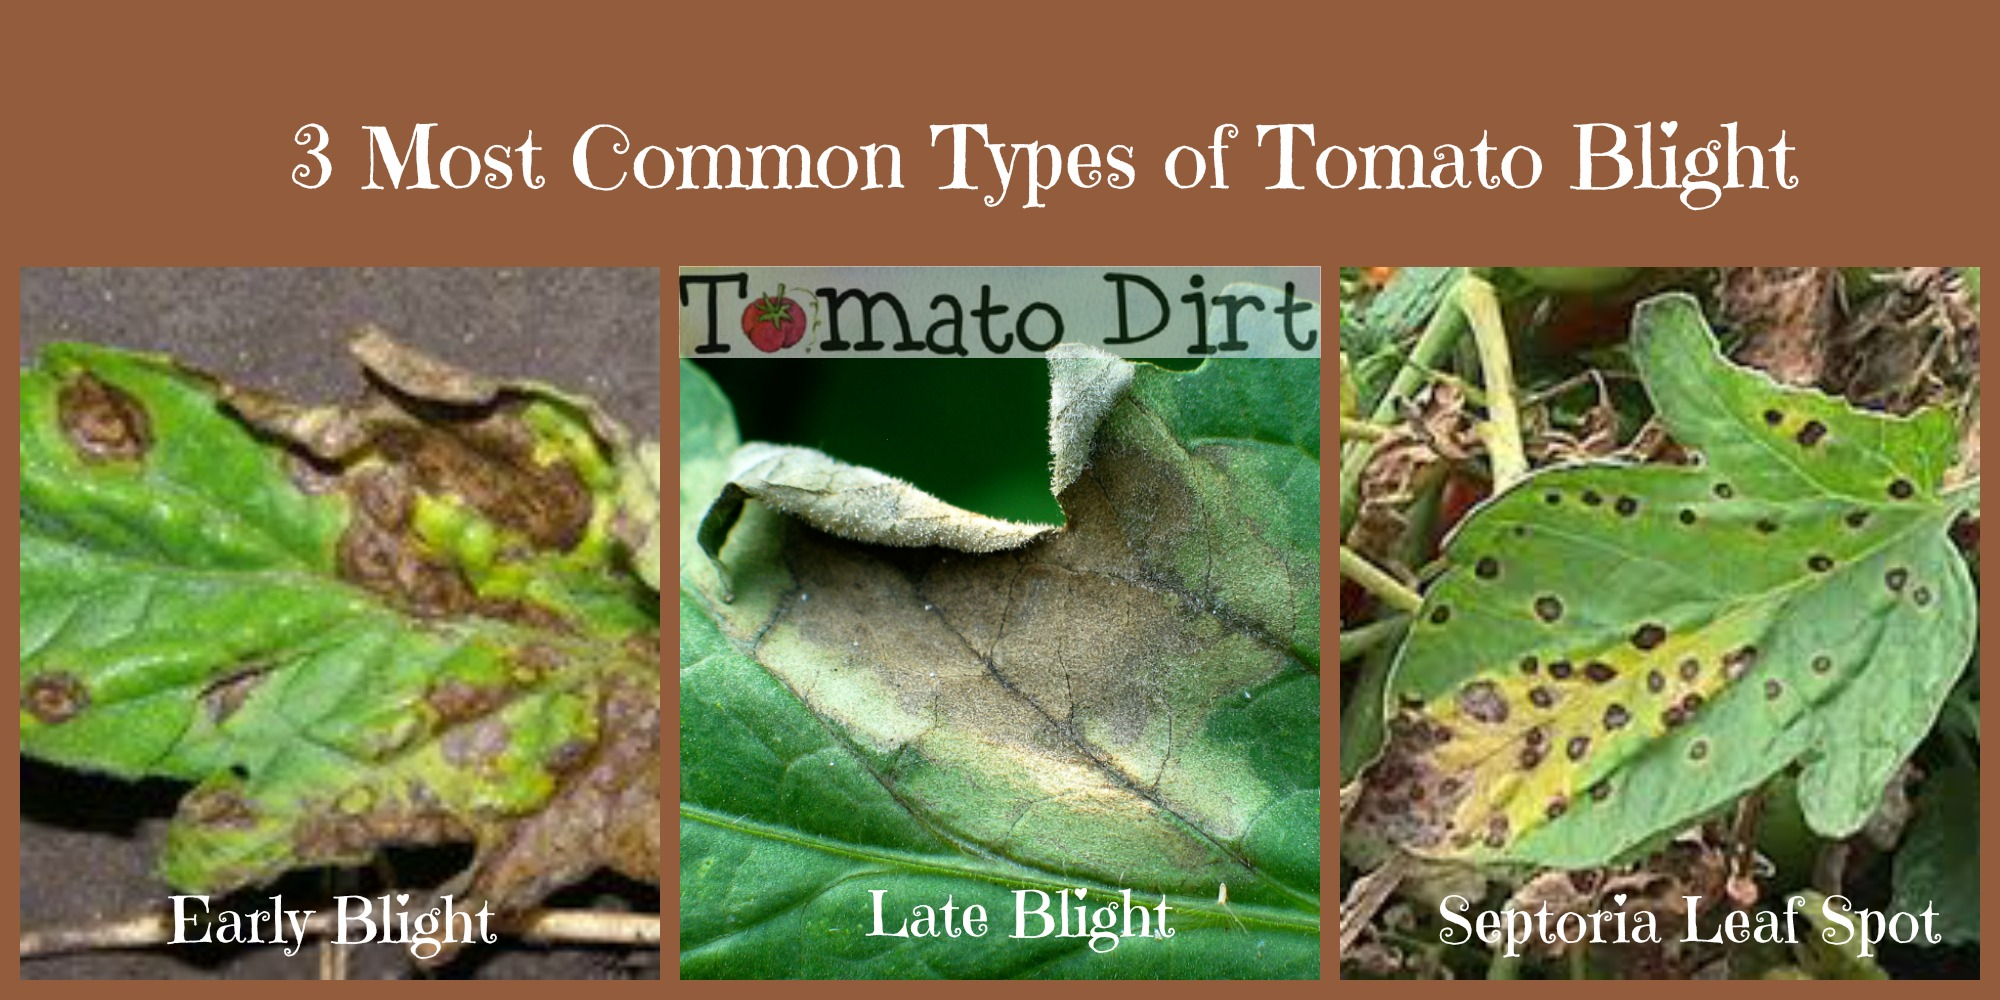 3 most common types of tomato blight with Tomato Dirt